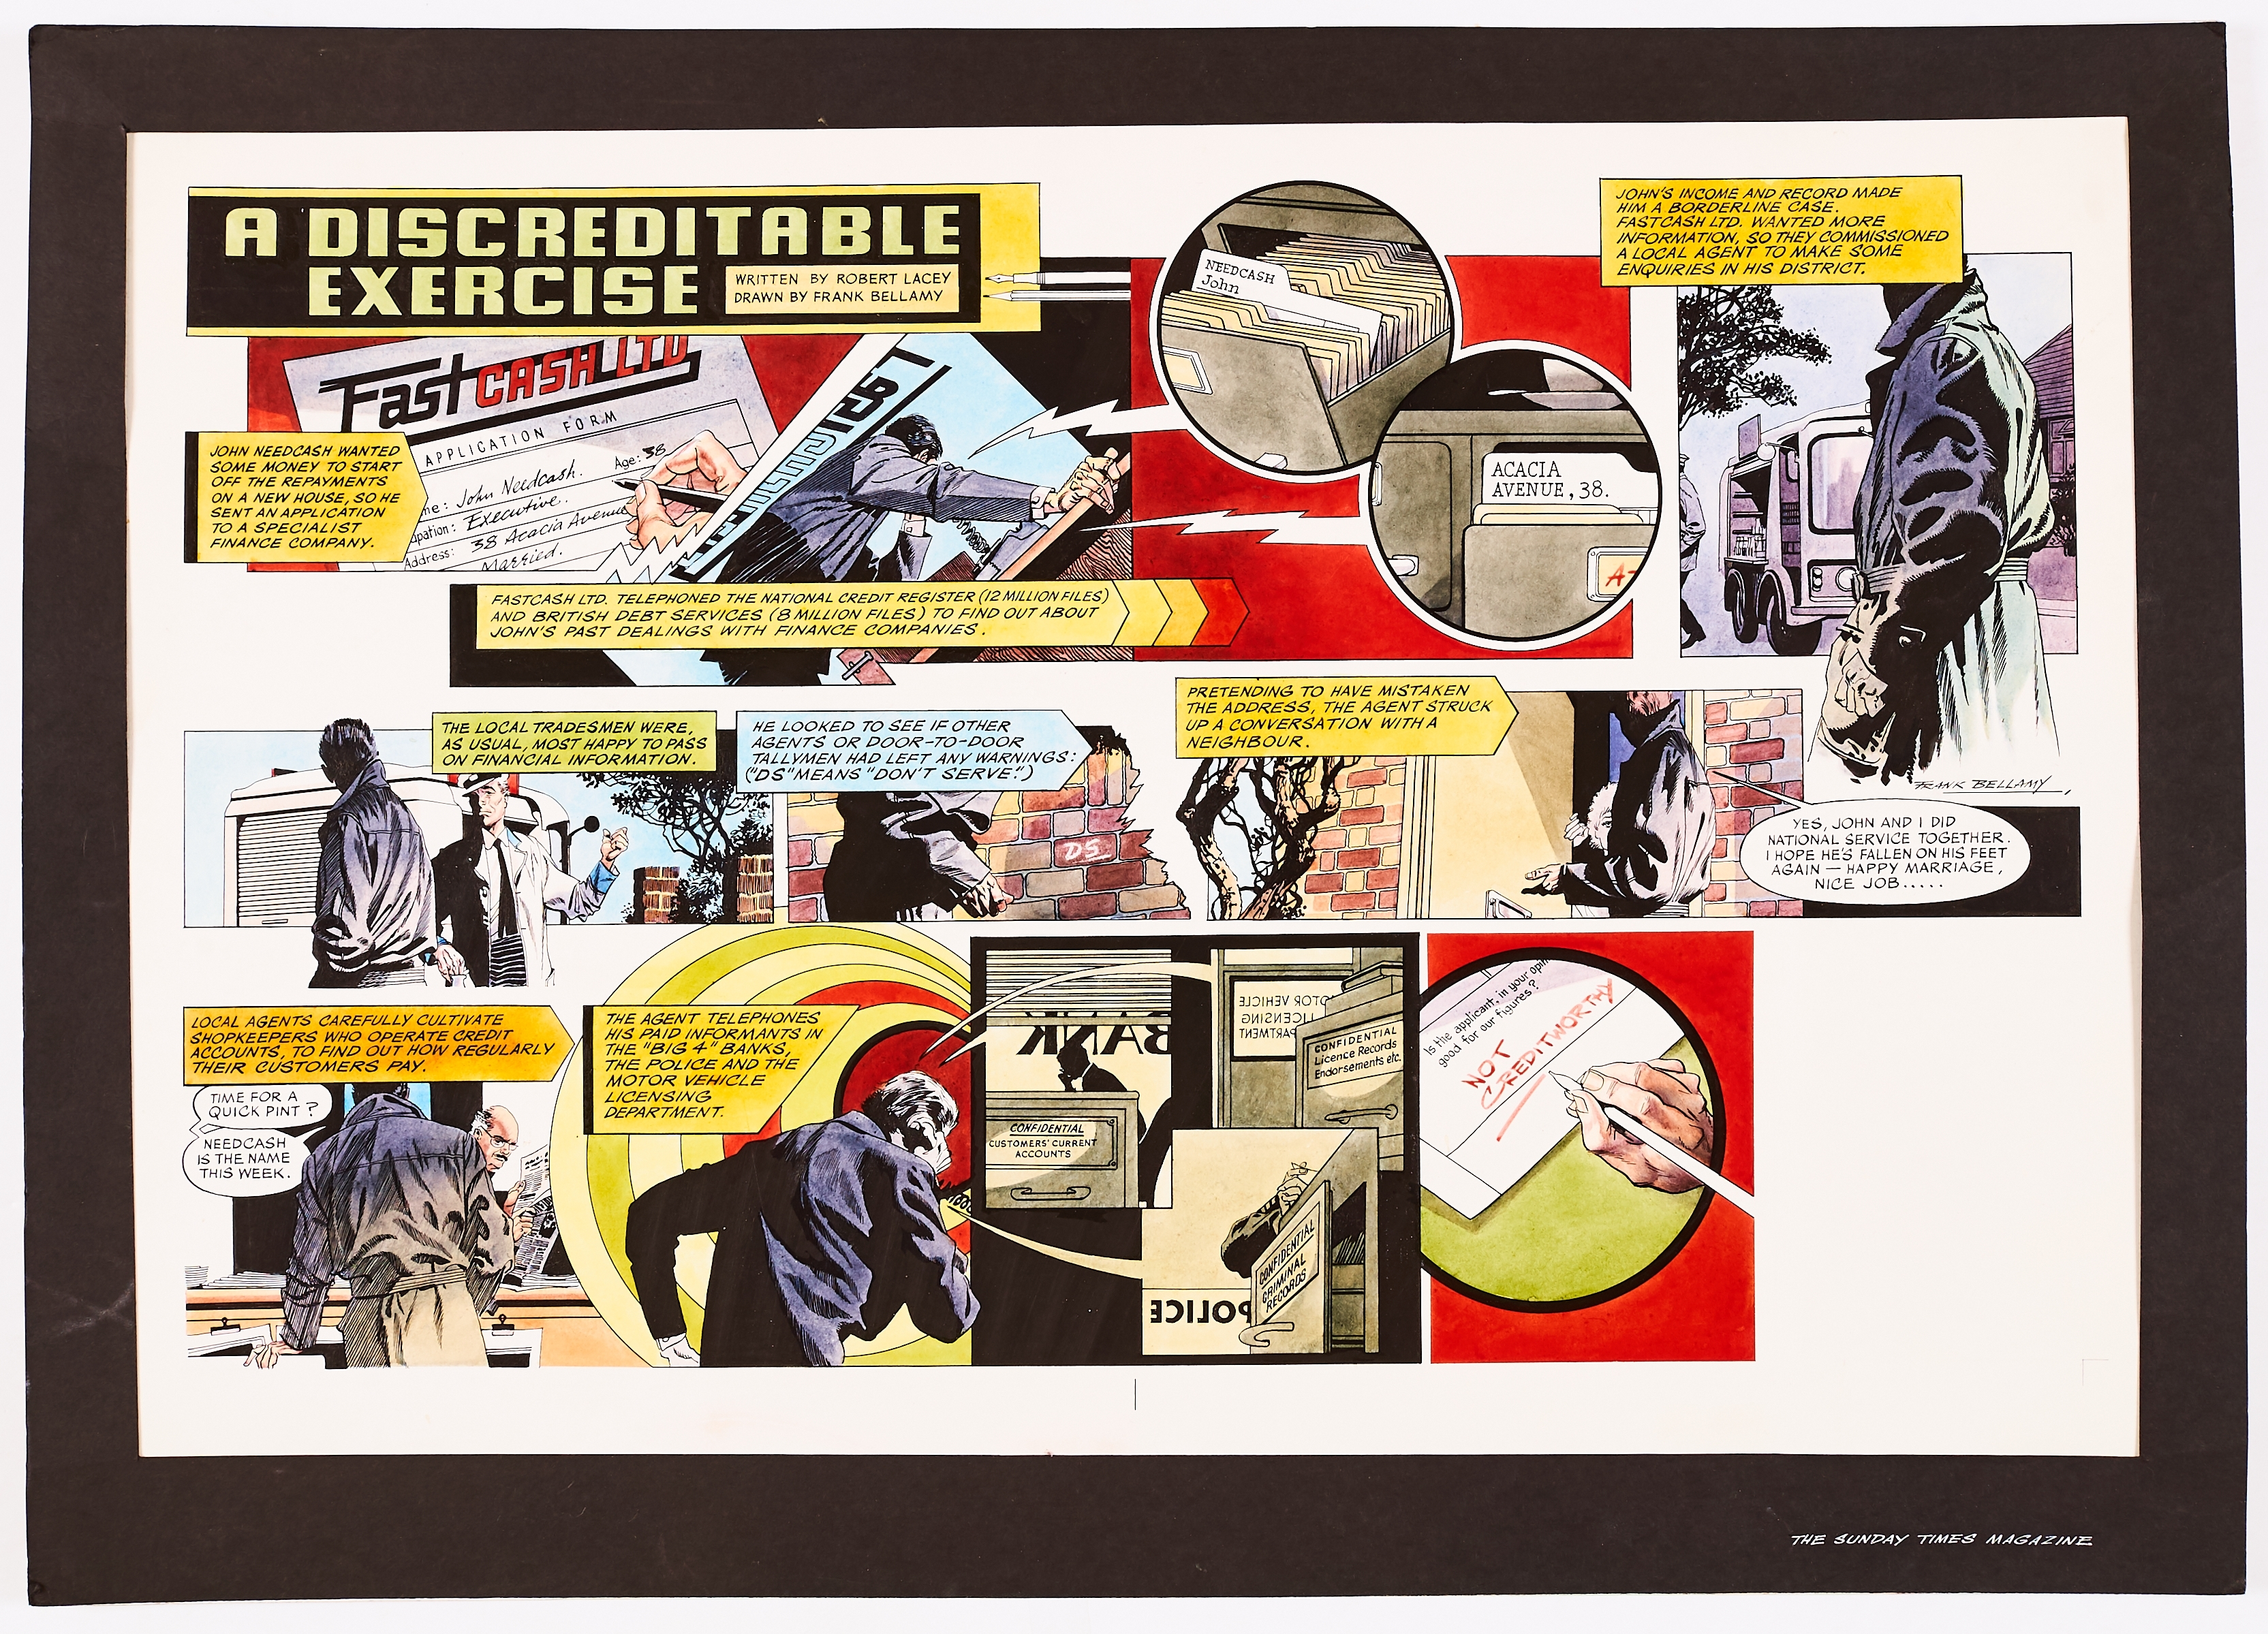 A Discreditable Exercise' original double-page artwork painted and signed by Frank Bellamy for